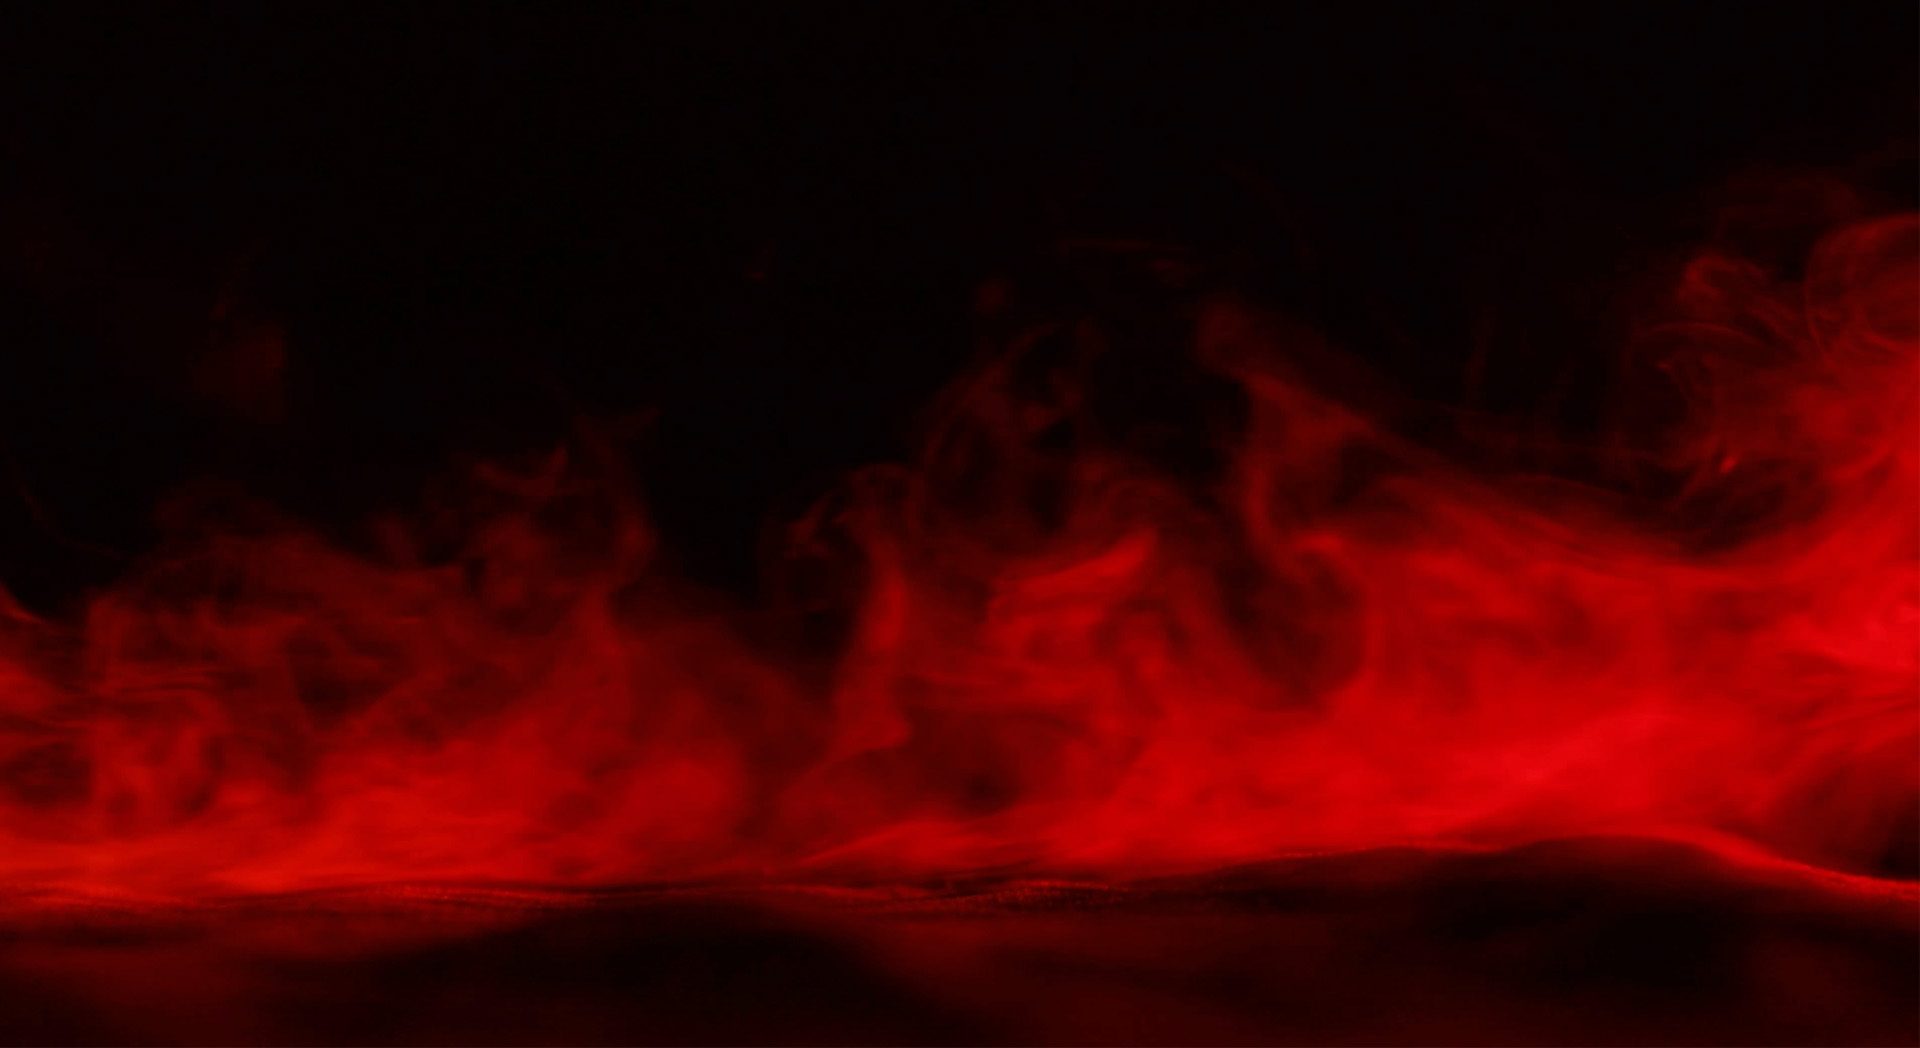 Abstract Red Dry Ice Smoke Flame Background Loop - MusicTruth ...